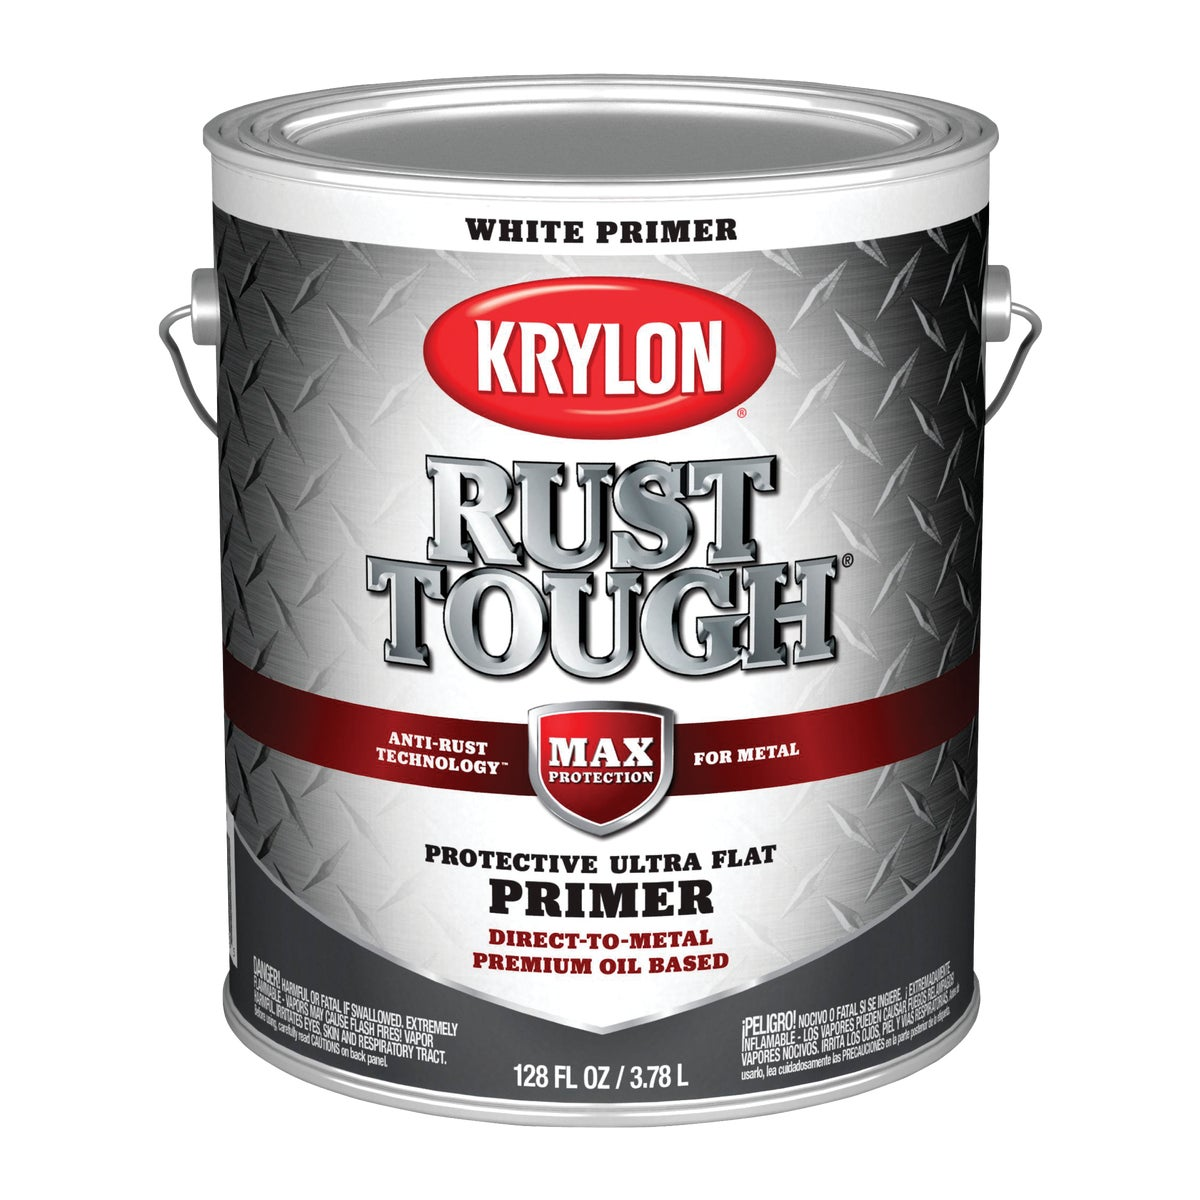 ALKYD WHITE RUST PRIMER - 044.0021852.007 by Valspar Corp